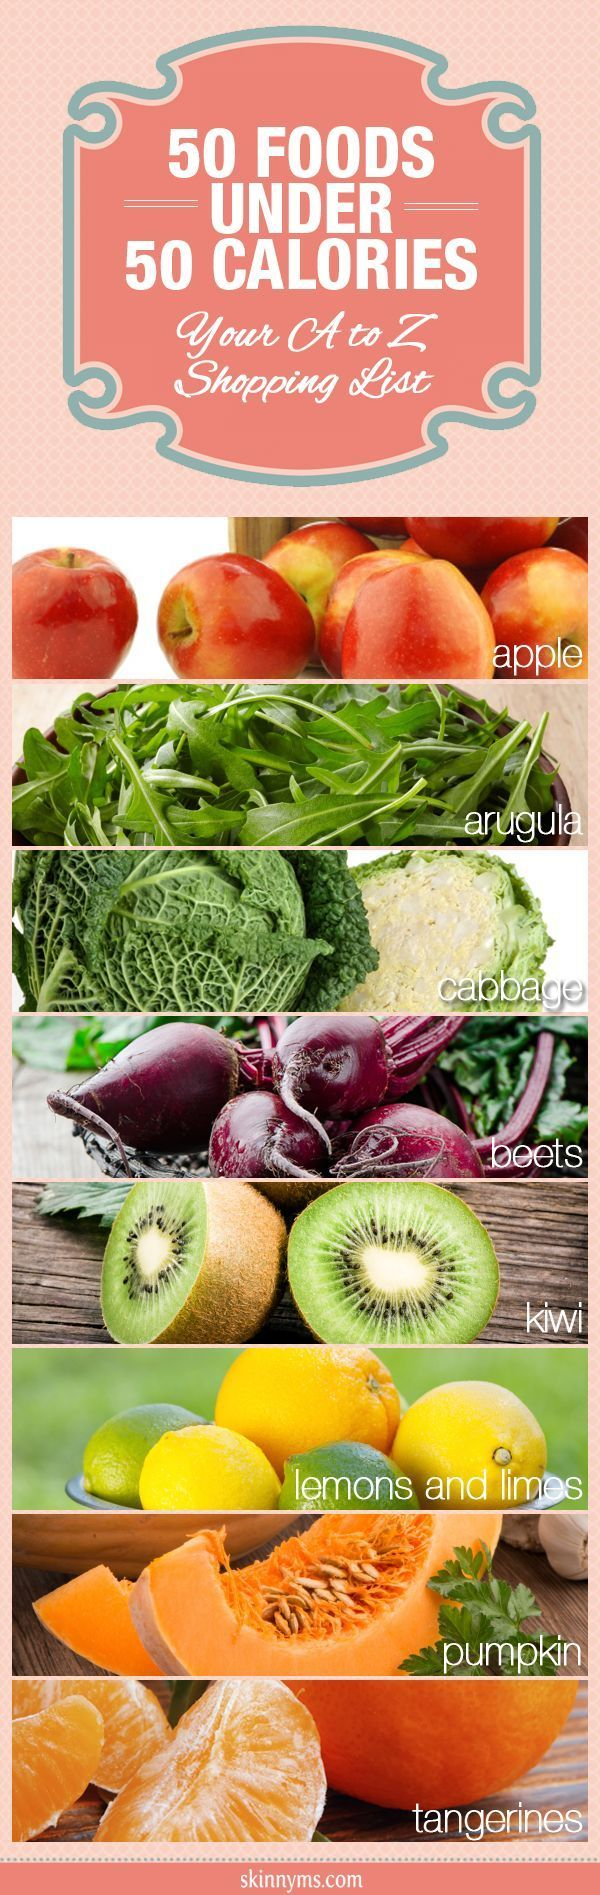 Is There A List Of Low Calorie Foods For Dieting